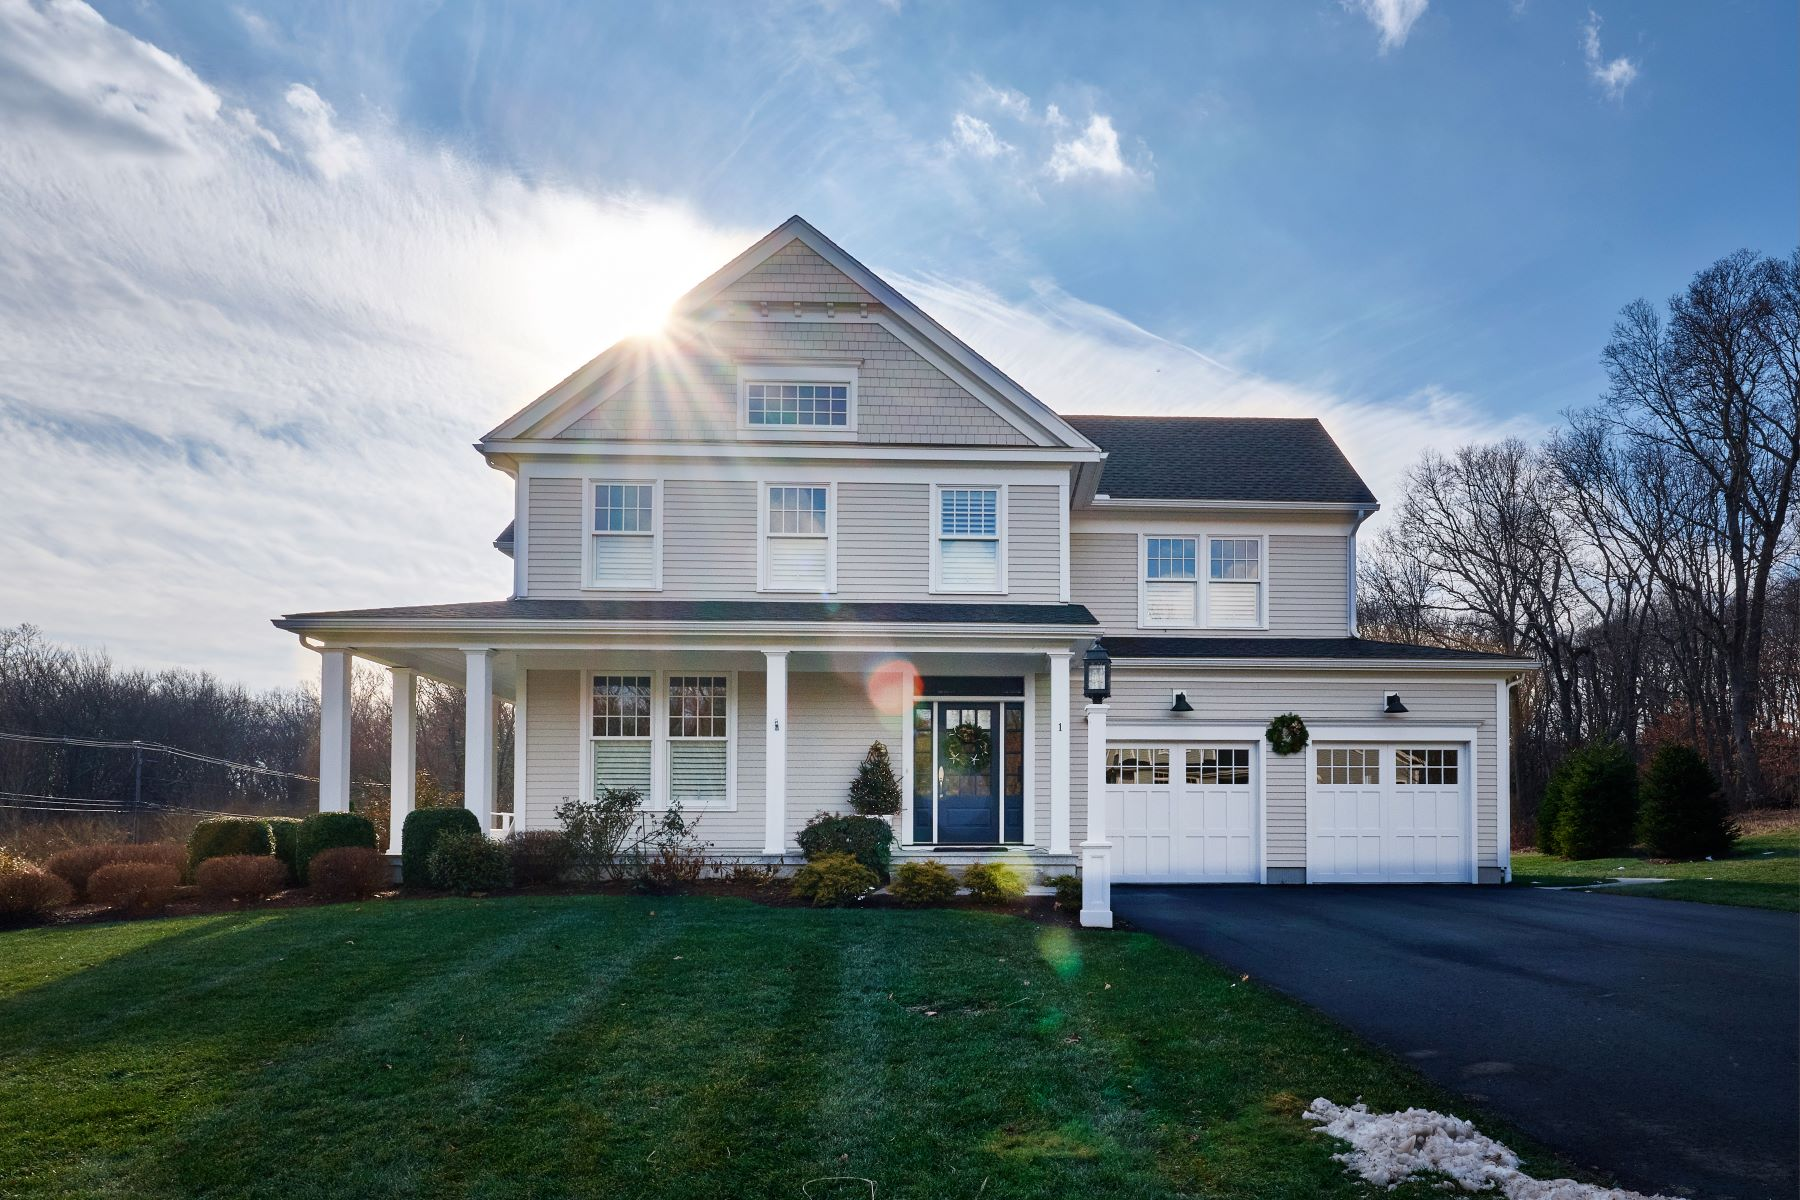 Condominium for Sale at Benton's Knoll in Sachem's Head 7 Benton's Knoll Guilford, Connecticut 06437 United States